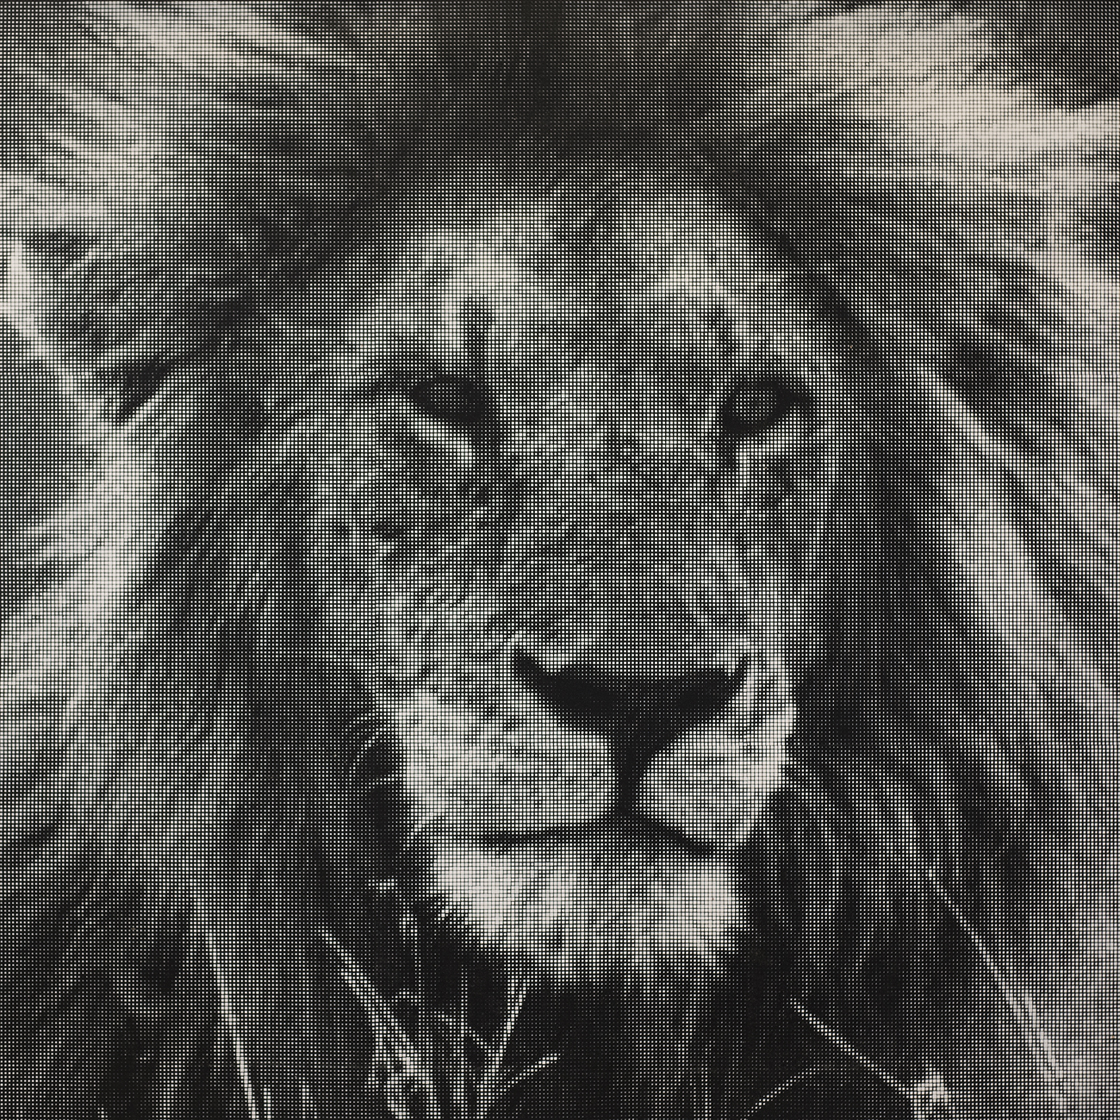 Lion 1, 72.25 x 72 x 1.25 Inches, Stenciled Spray Acrylic on Linen, 2019 - William Betts